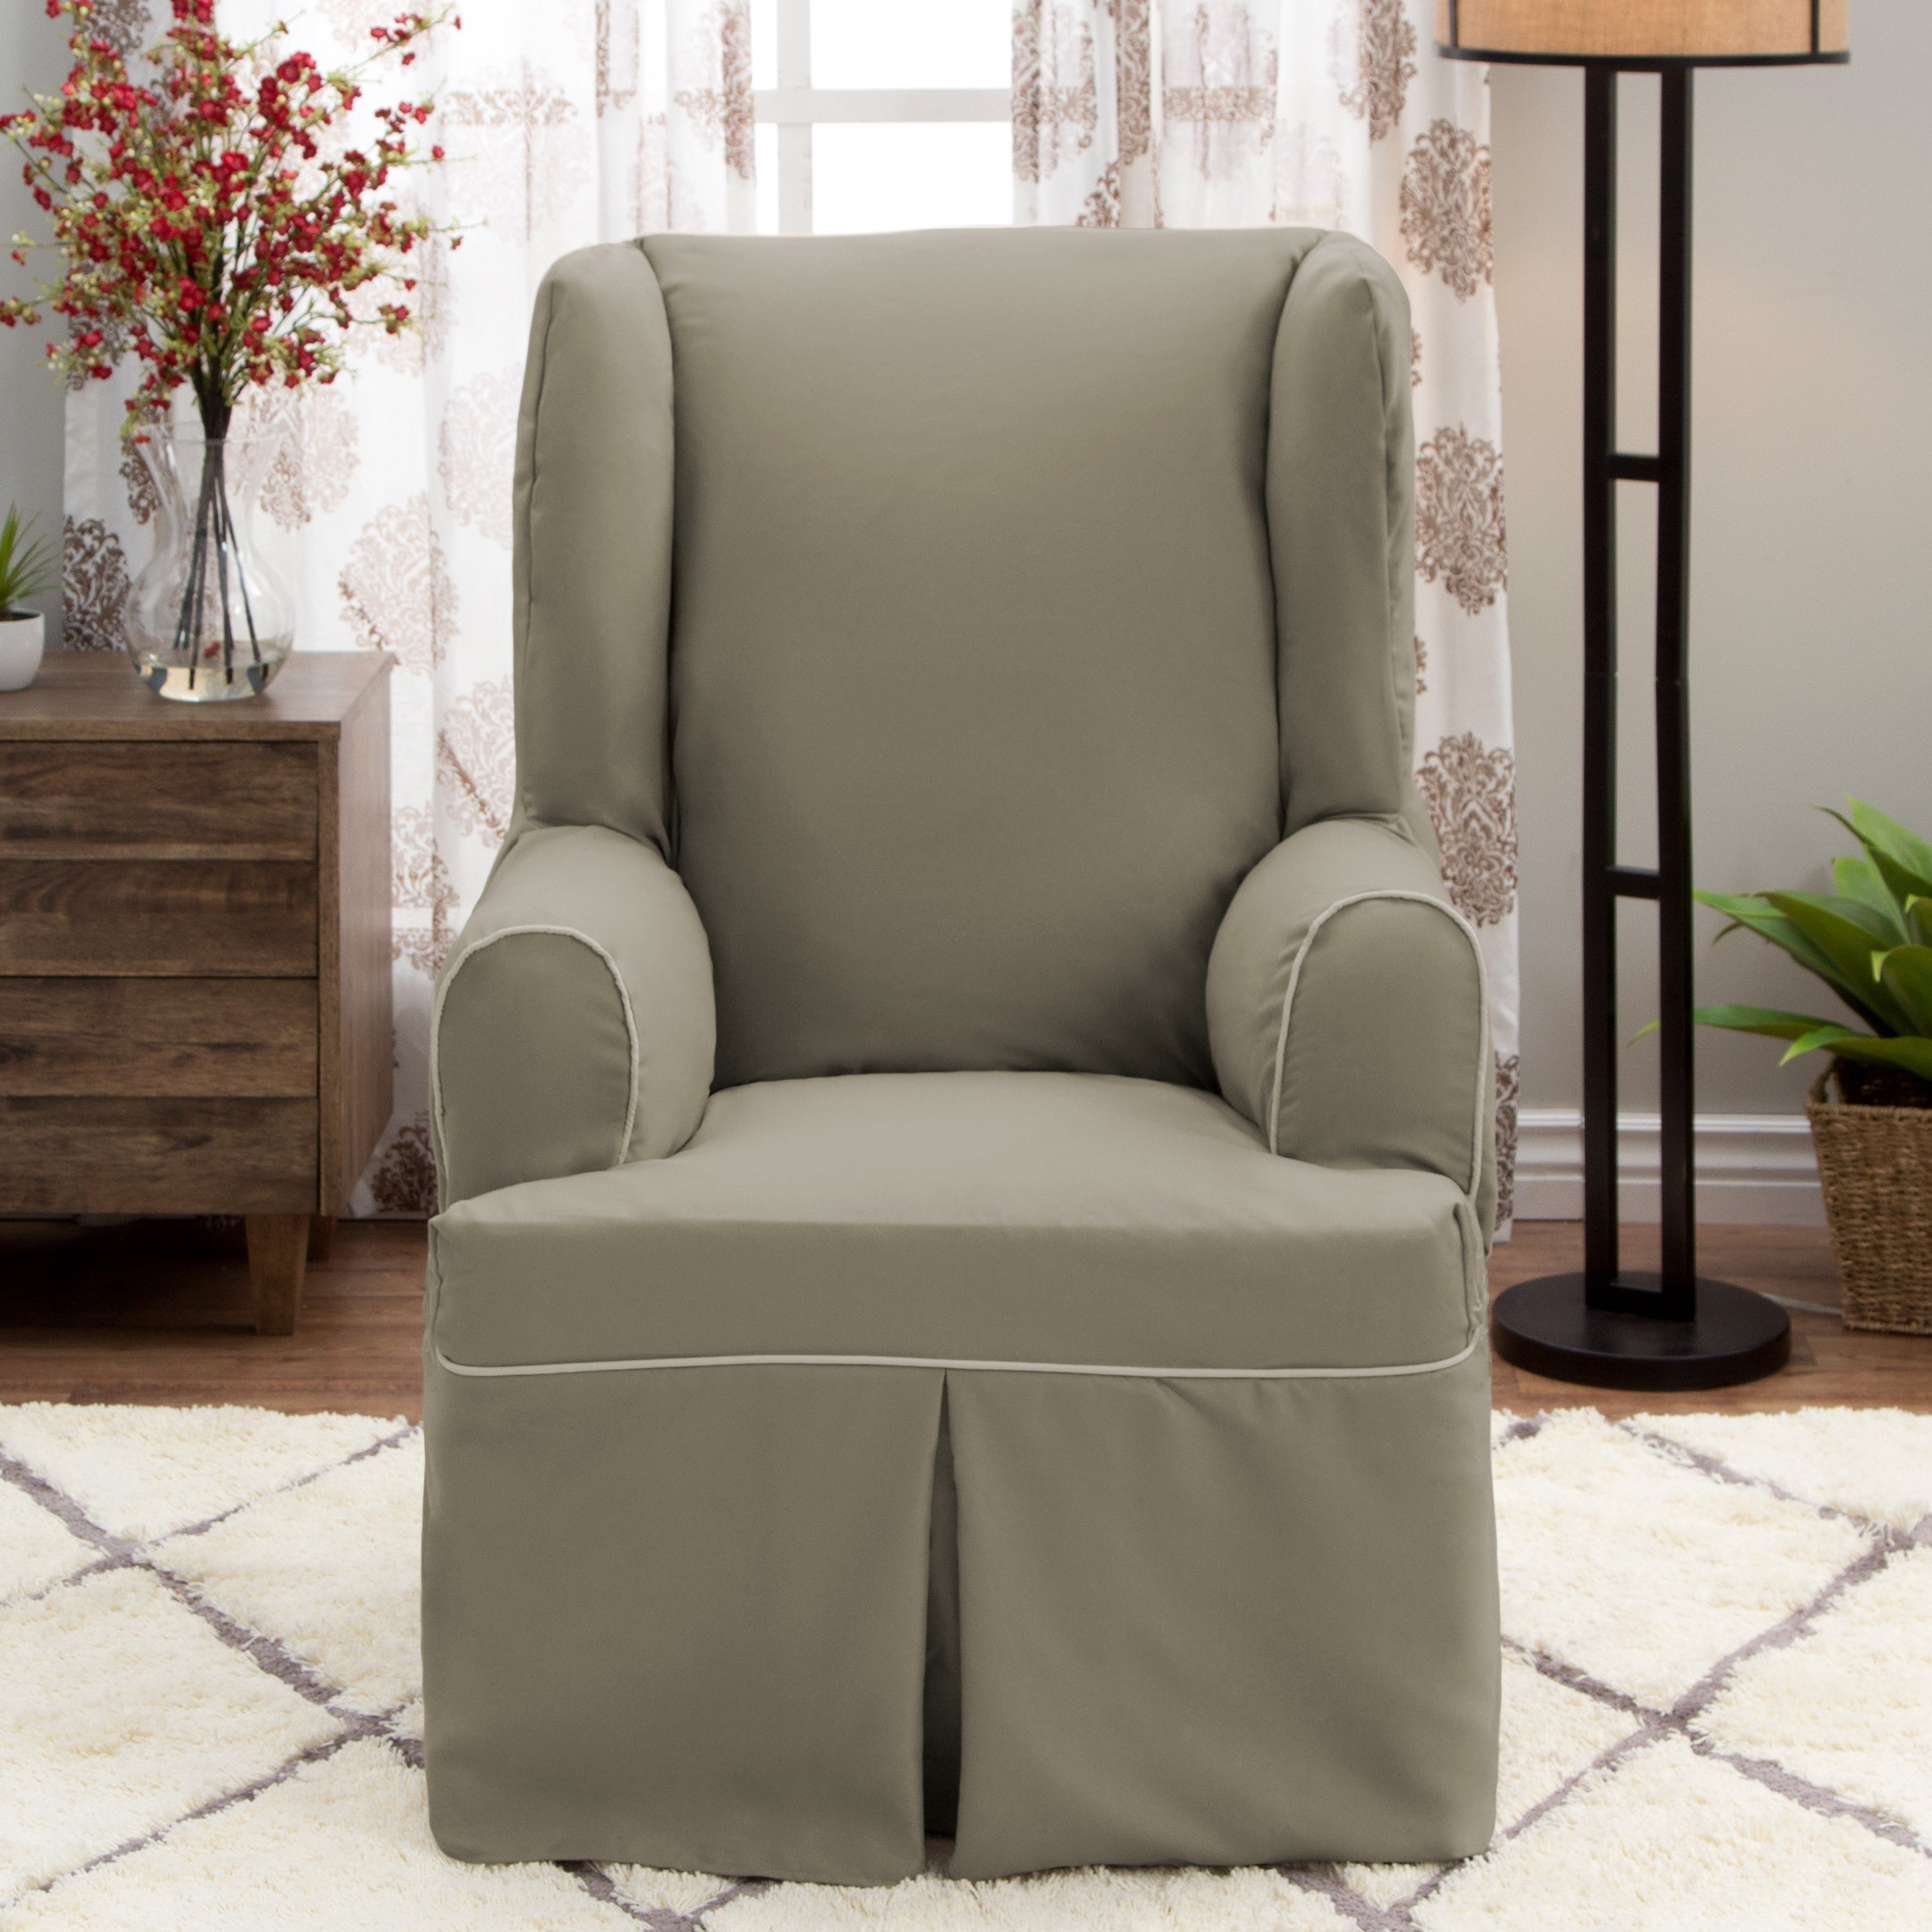 for decorate wingback slipcover soothing cover living to sure chair wing how with recliner furniture models room all slipcovered images fit your